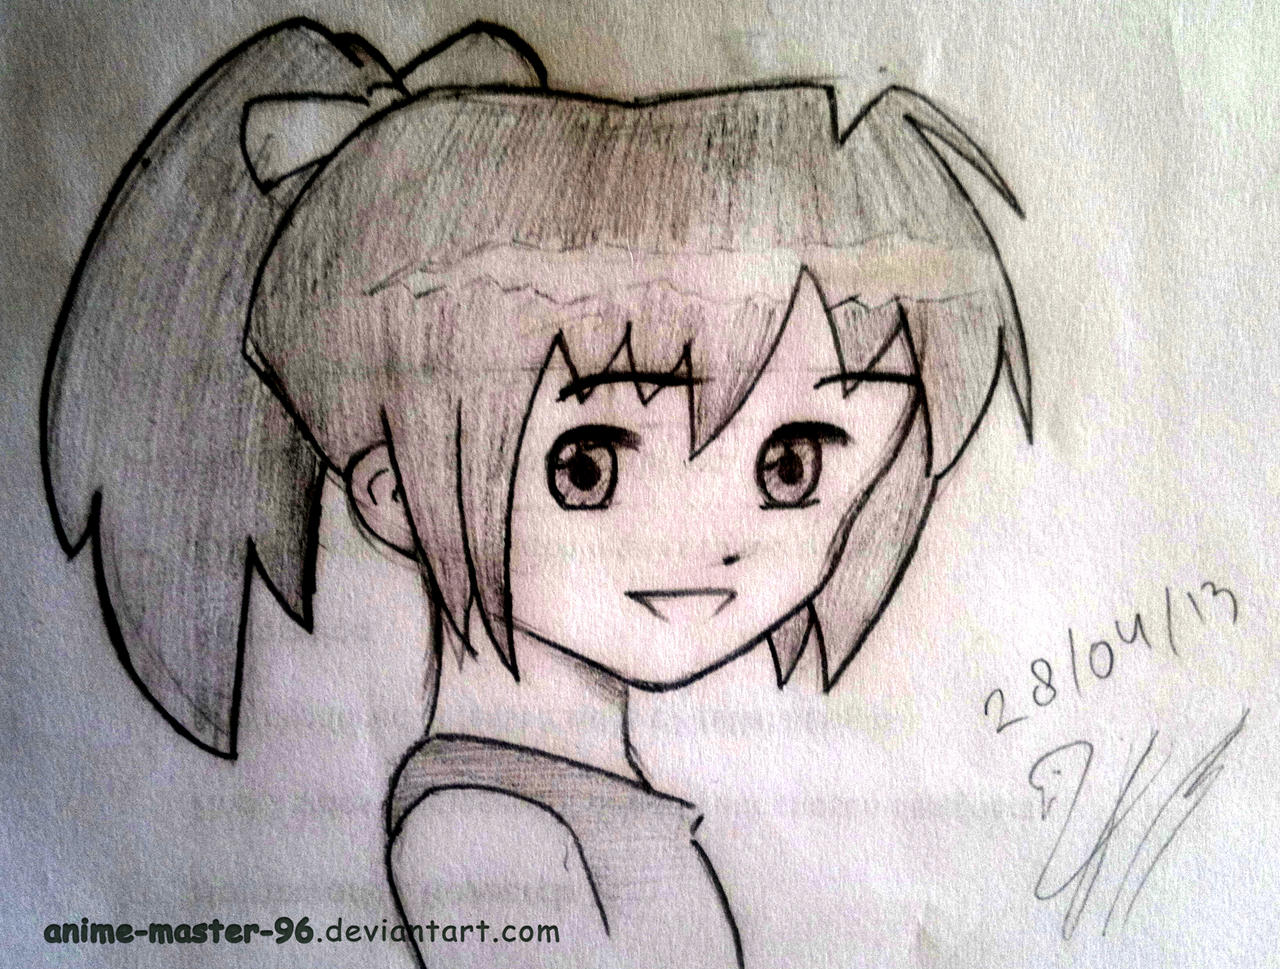 ... Second Anime drawing ever :D by anime-master-96